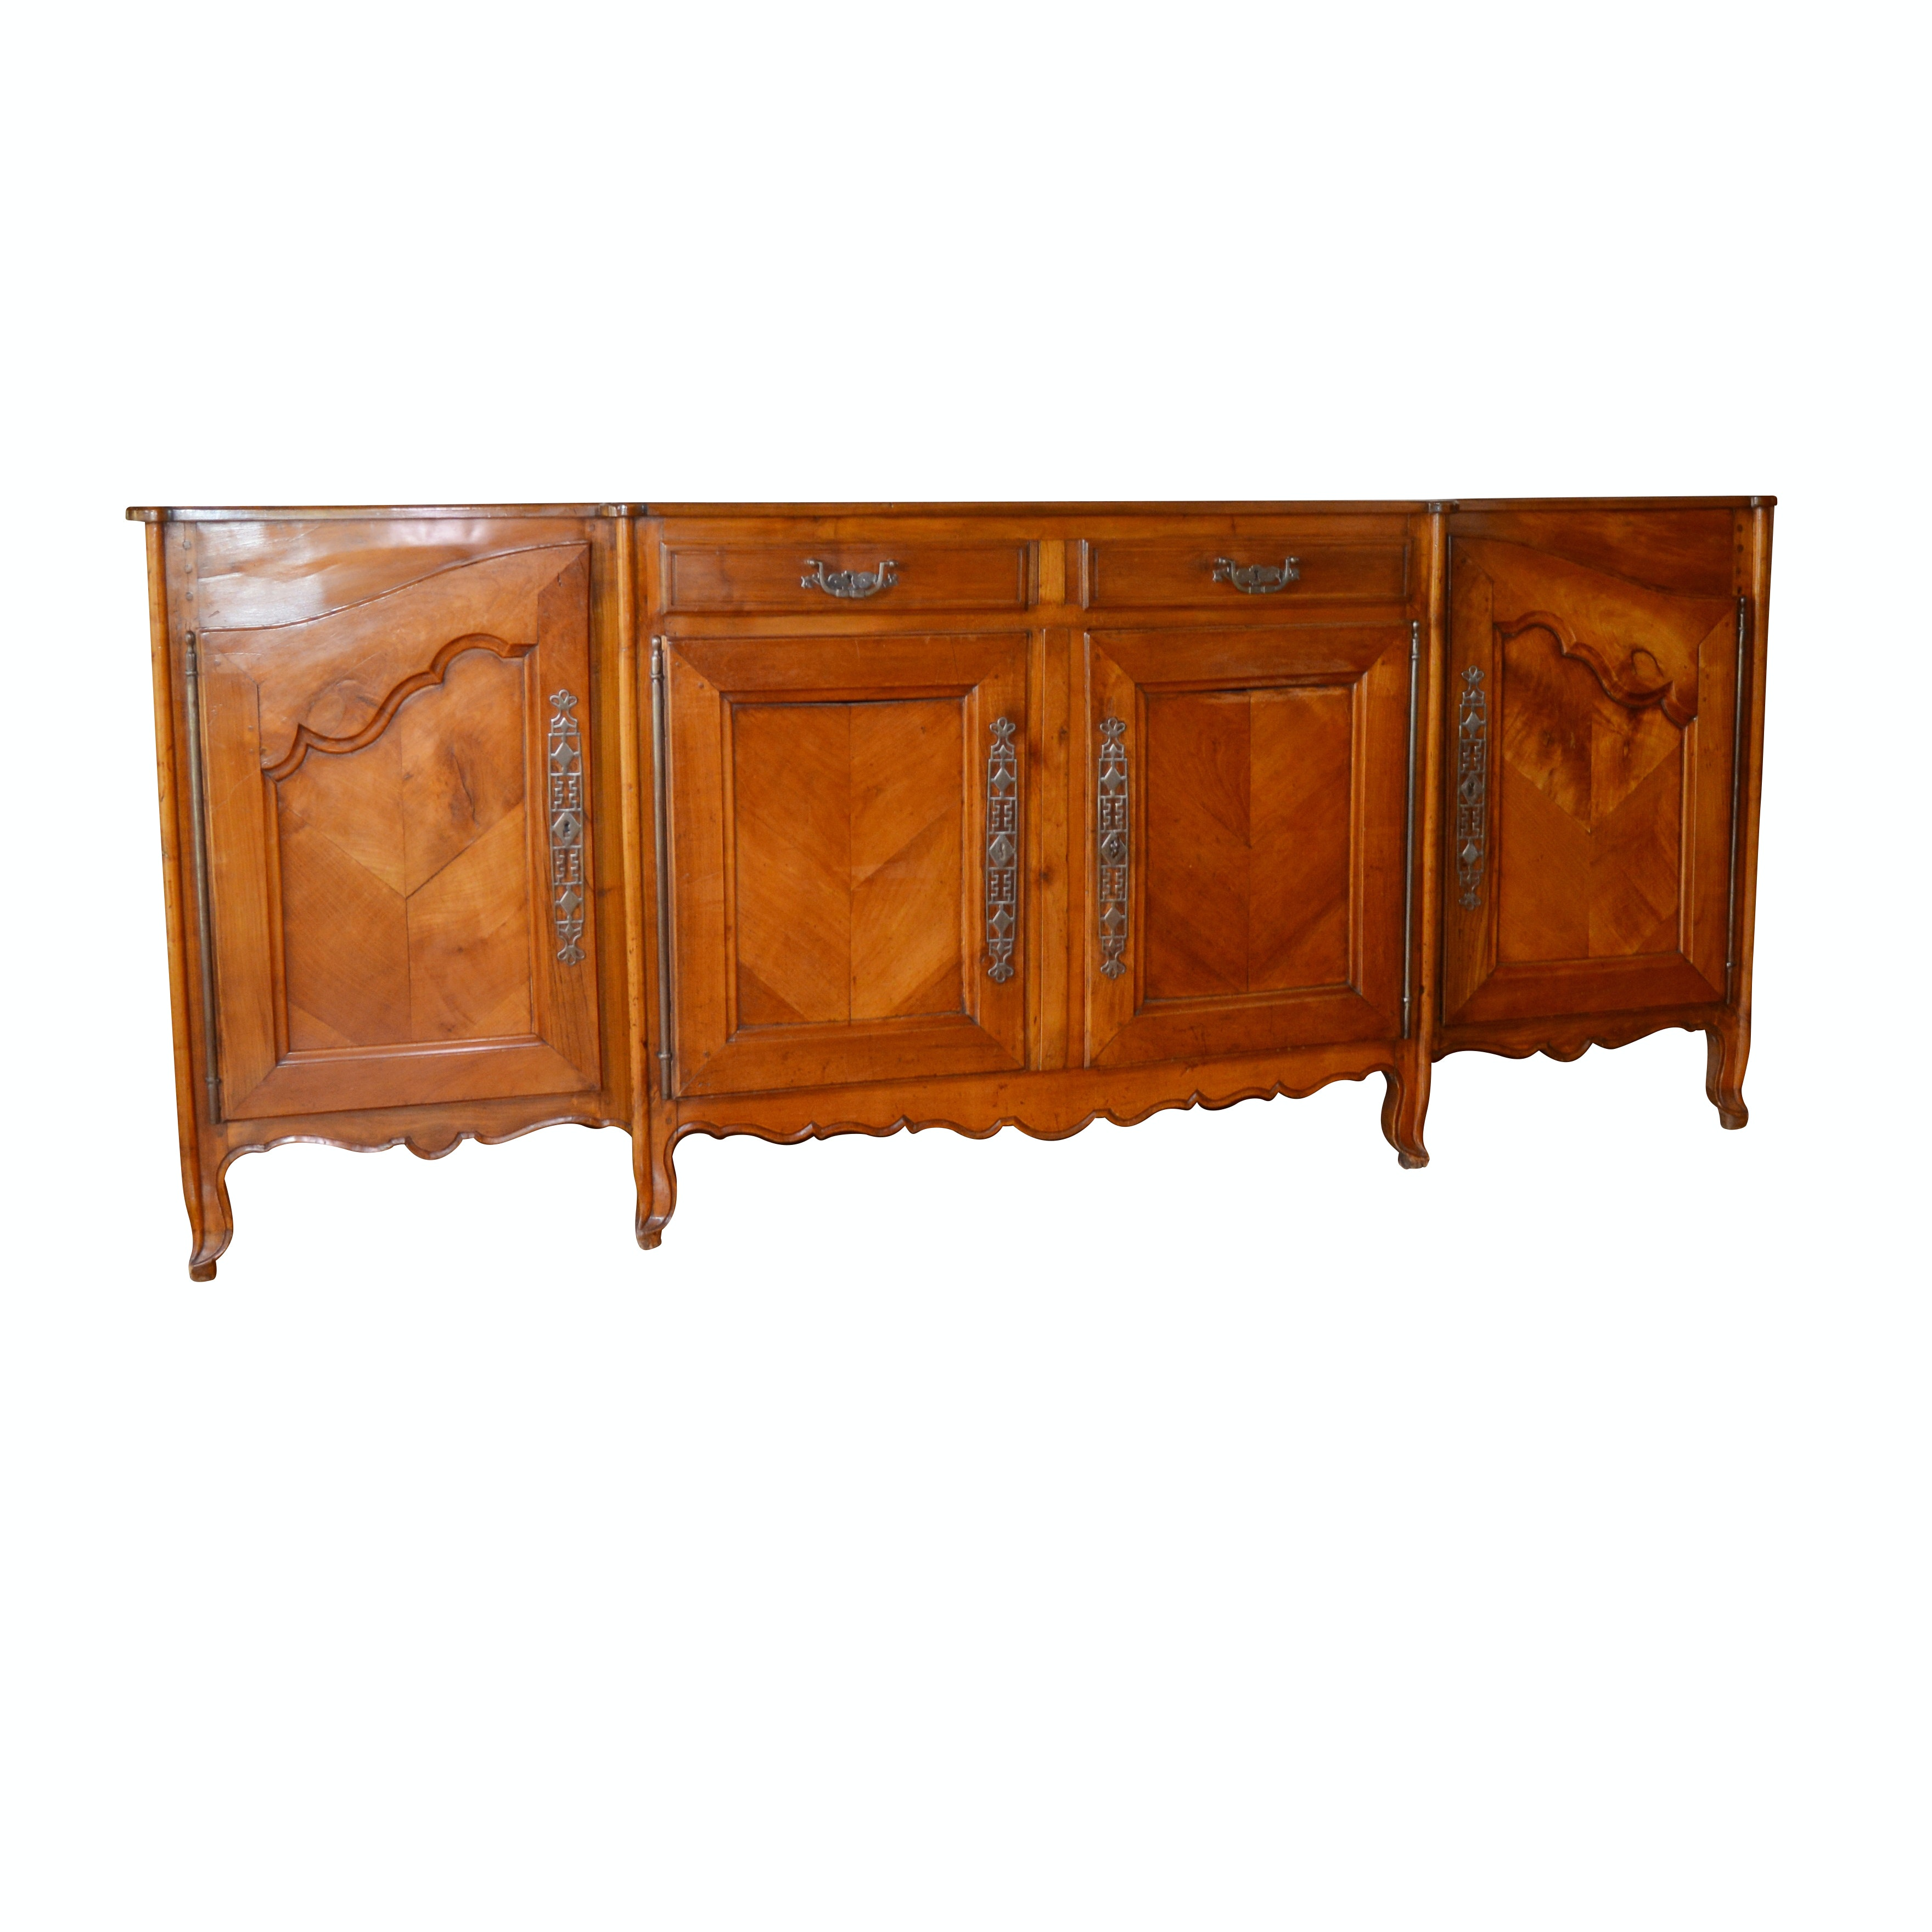 French Provincial Louis XV Style Walnut Buffet with Pewter Pulls, Circa 1850